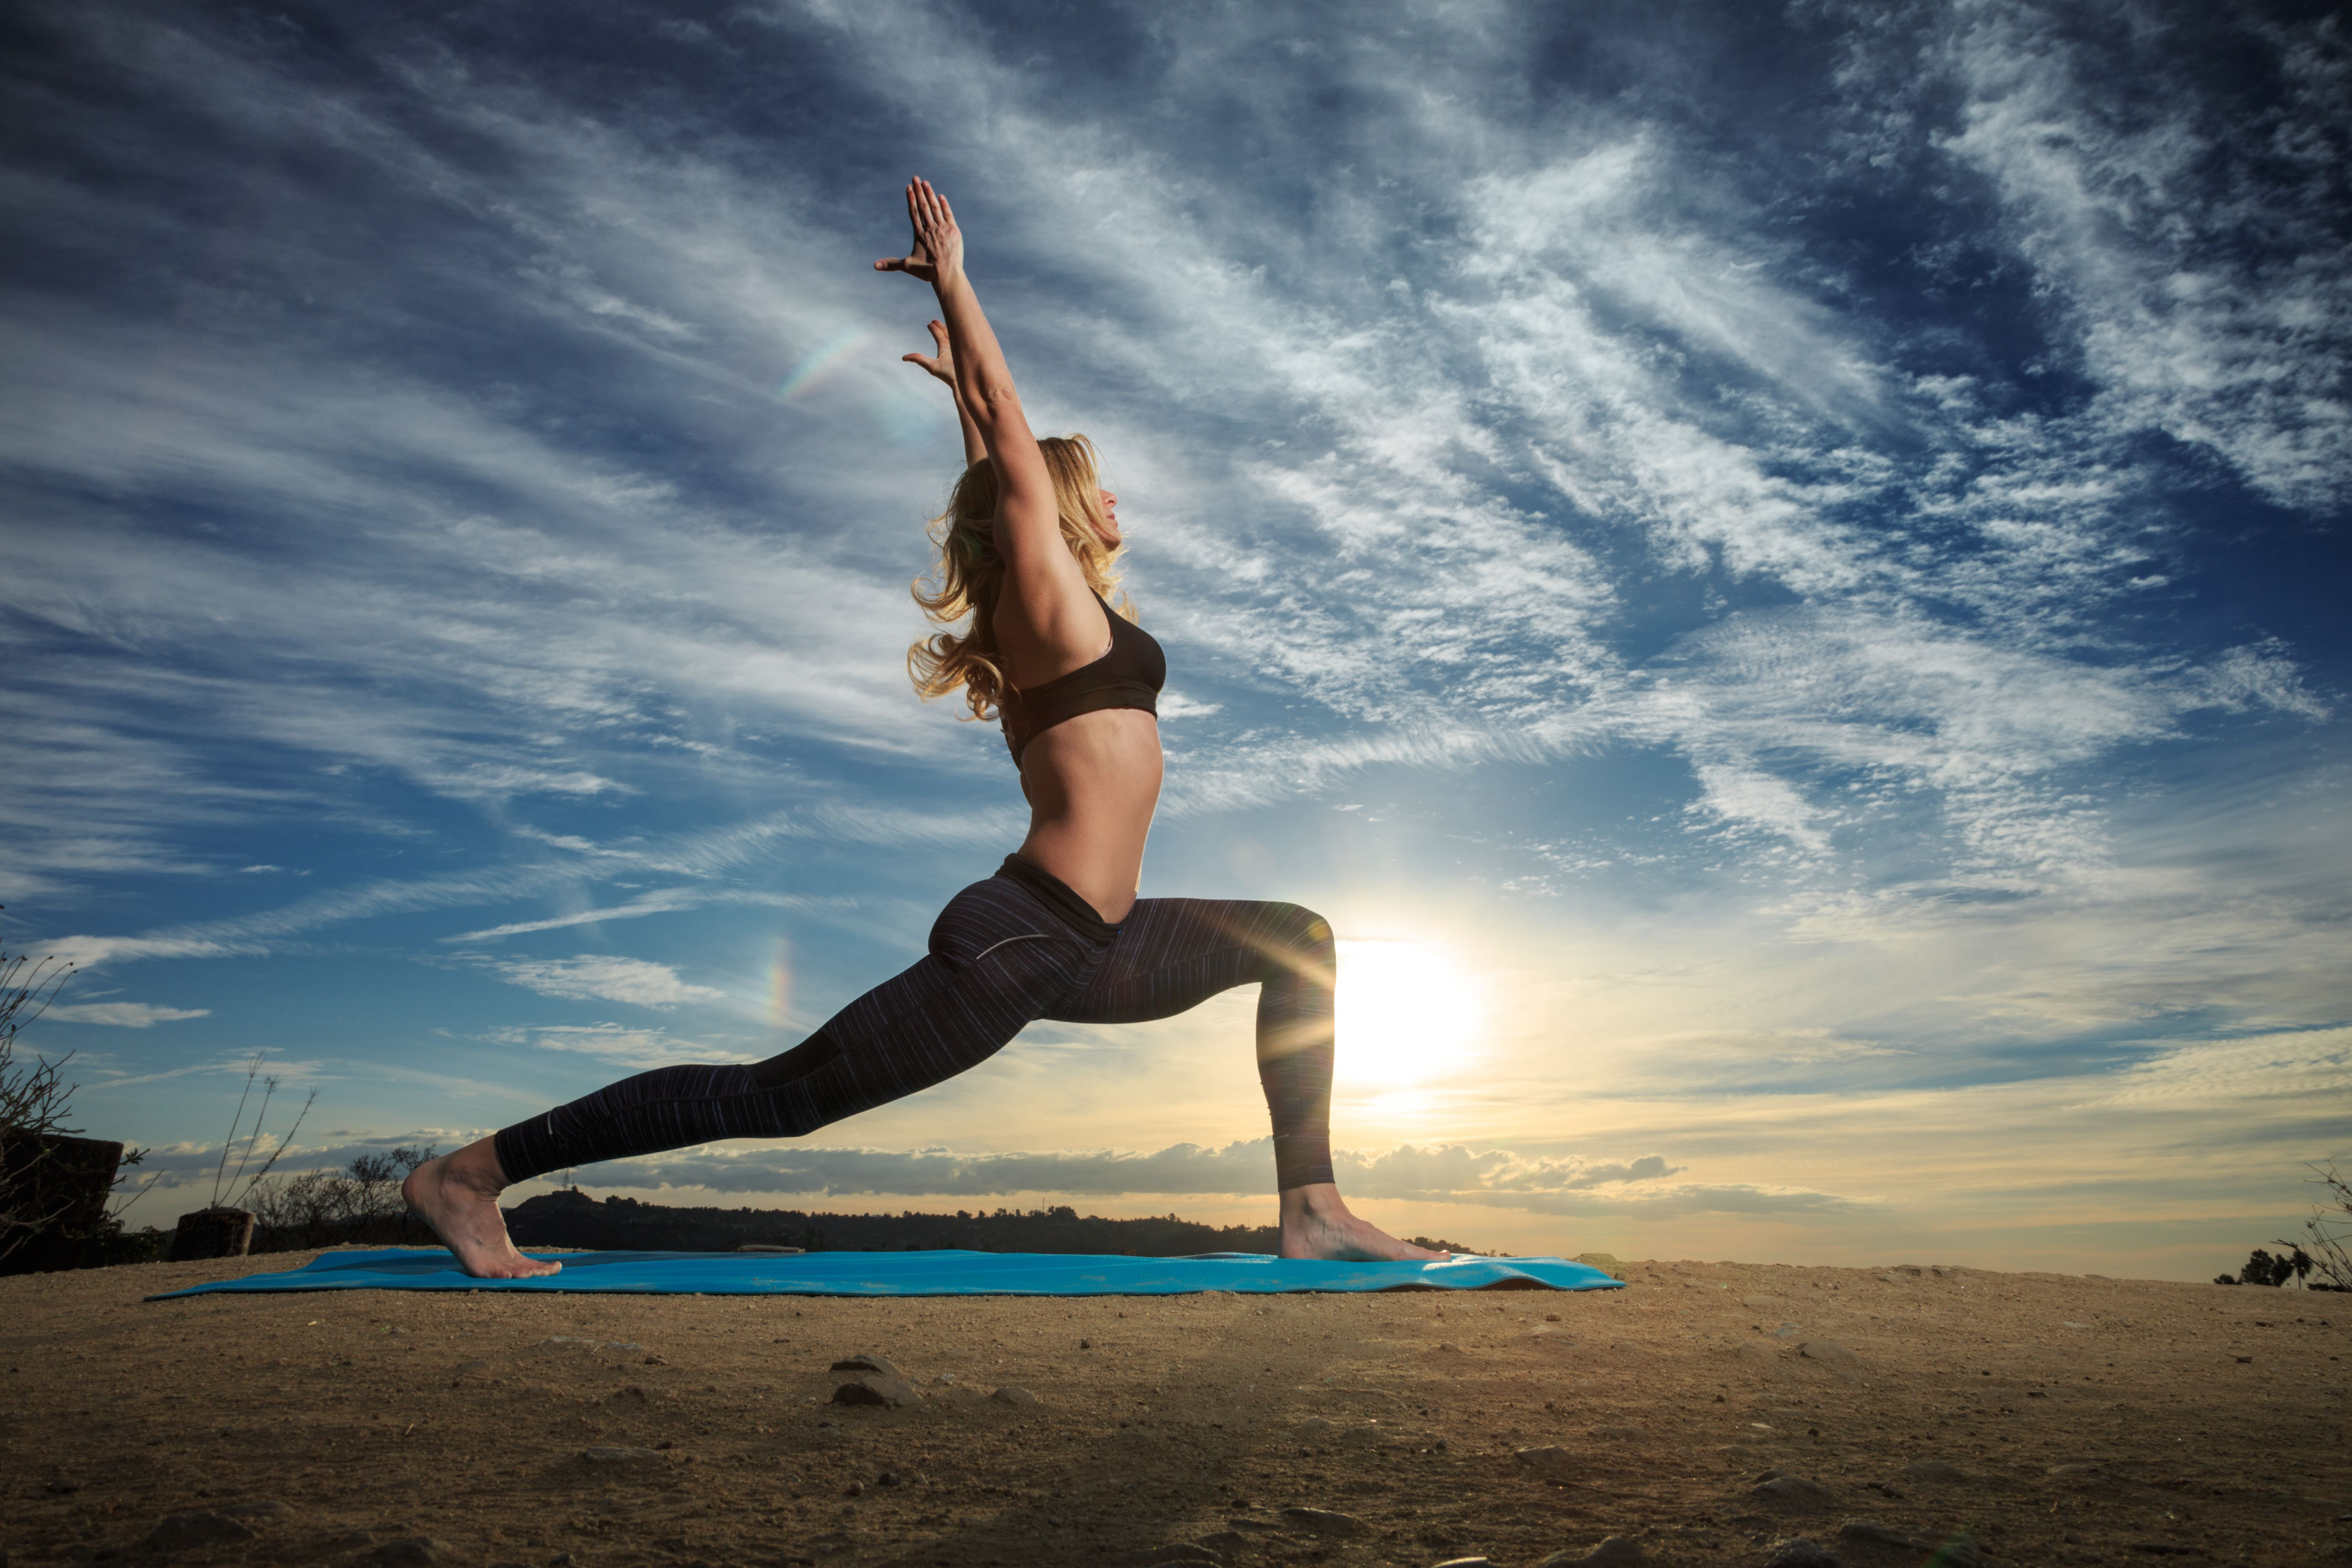 5760x3840 38 Yoga HD Wallpapers   Background Images - Wallpaper Abyss